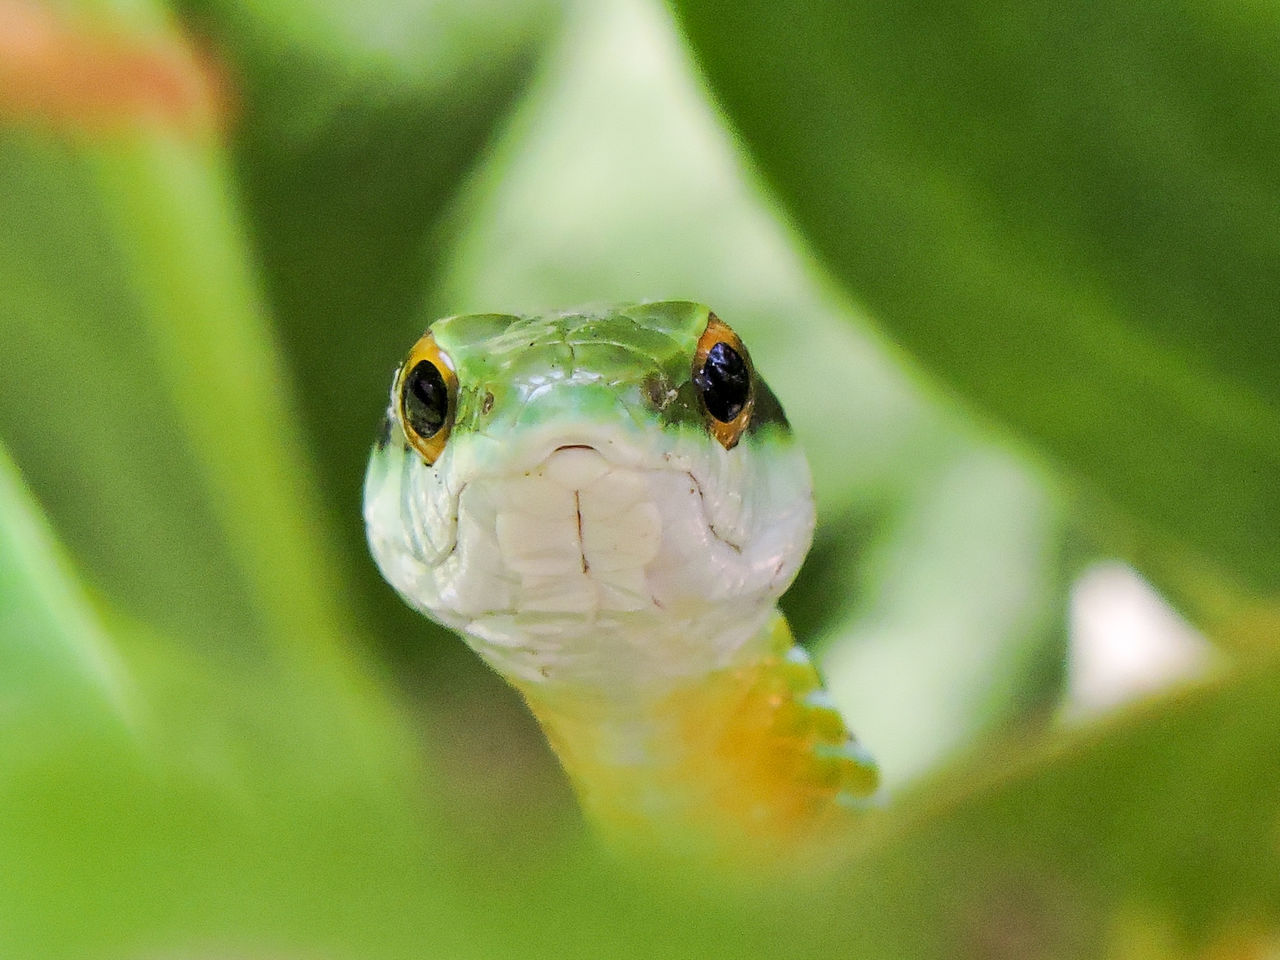 Animal Animal Portrait Beauty In Nature Close-up Eye Contact Focus On Foreground Green Green Color Green Snake Magazhu Nature No People Outdoors Reptile Selective Focus Snake Tropical Tropical Animal Tropical Snake Wildlife Yelapa Showcase July